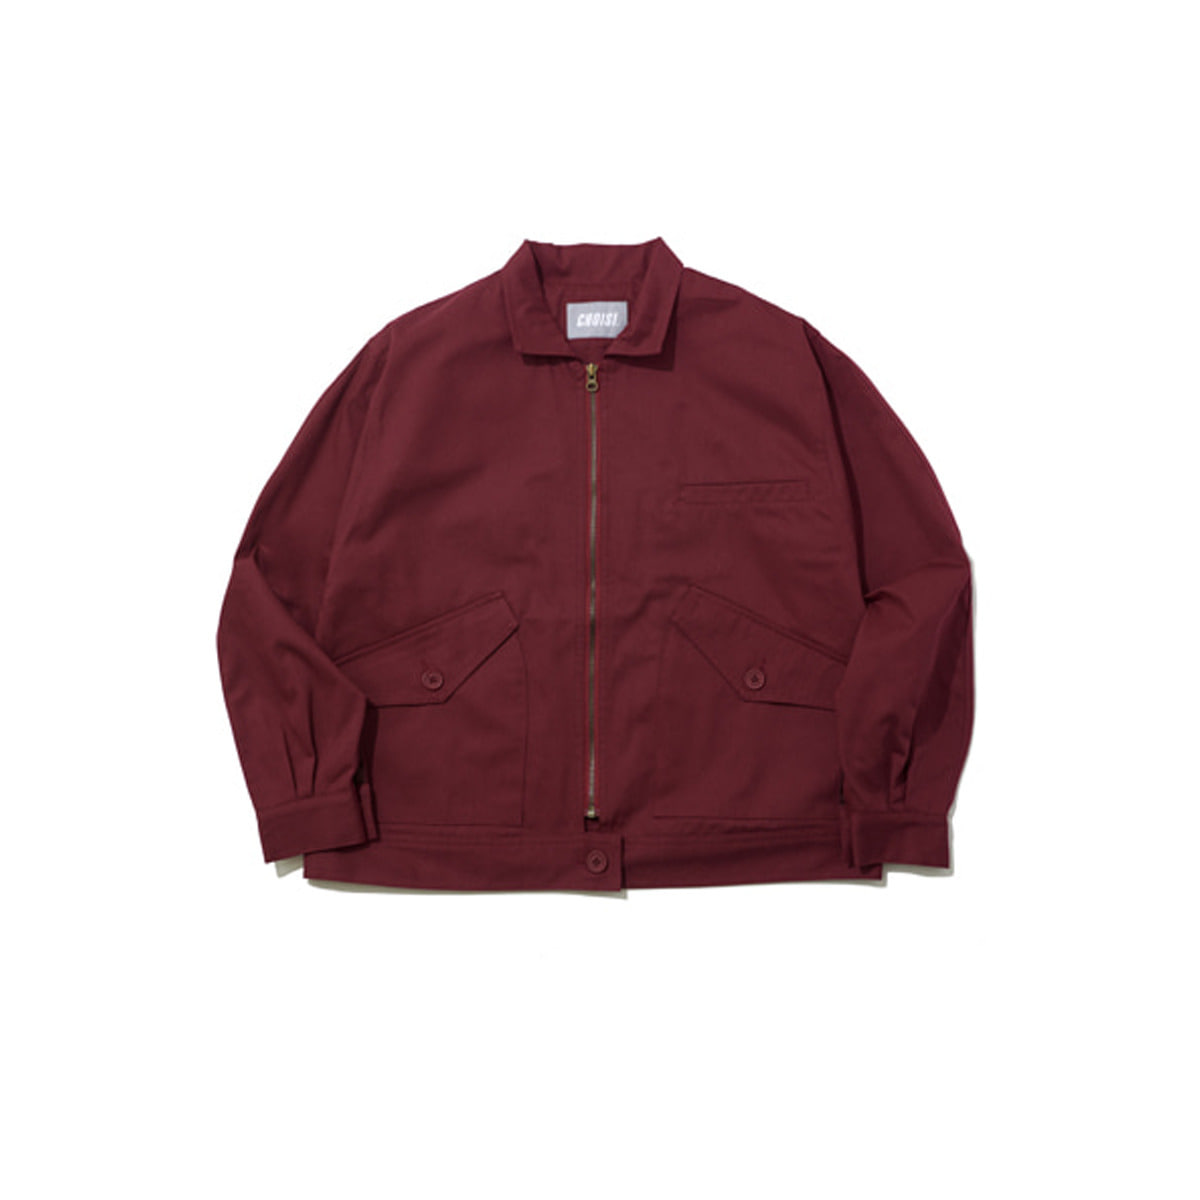 Primary Trucker Jacket, Burgundy